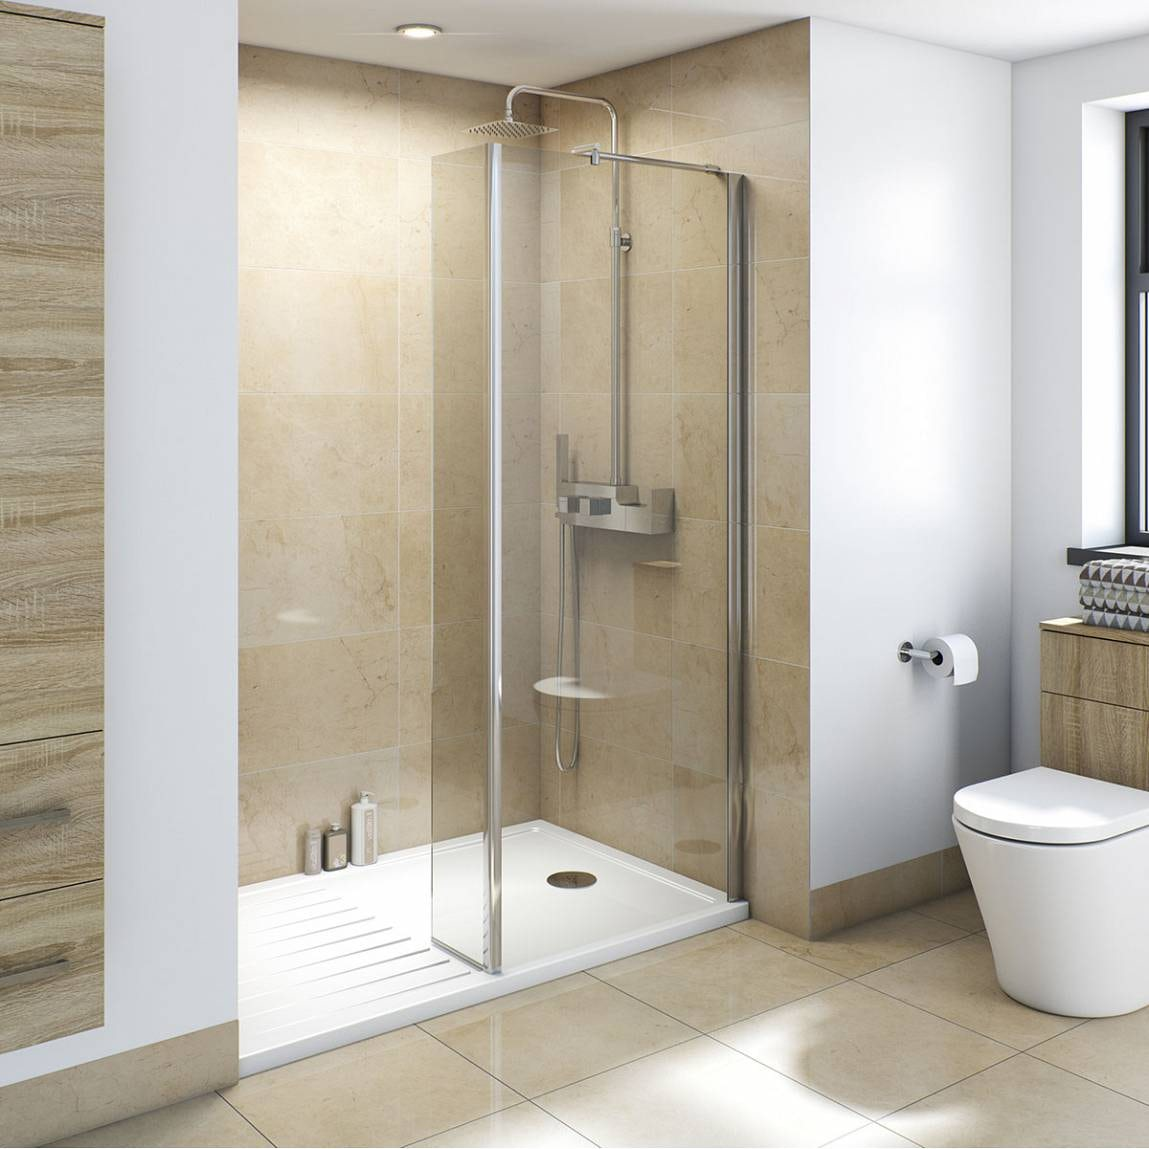 products shower enclosure spectra hinged in with corner panel walk aqata